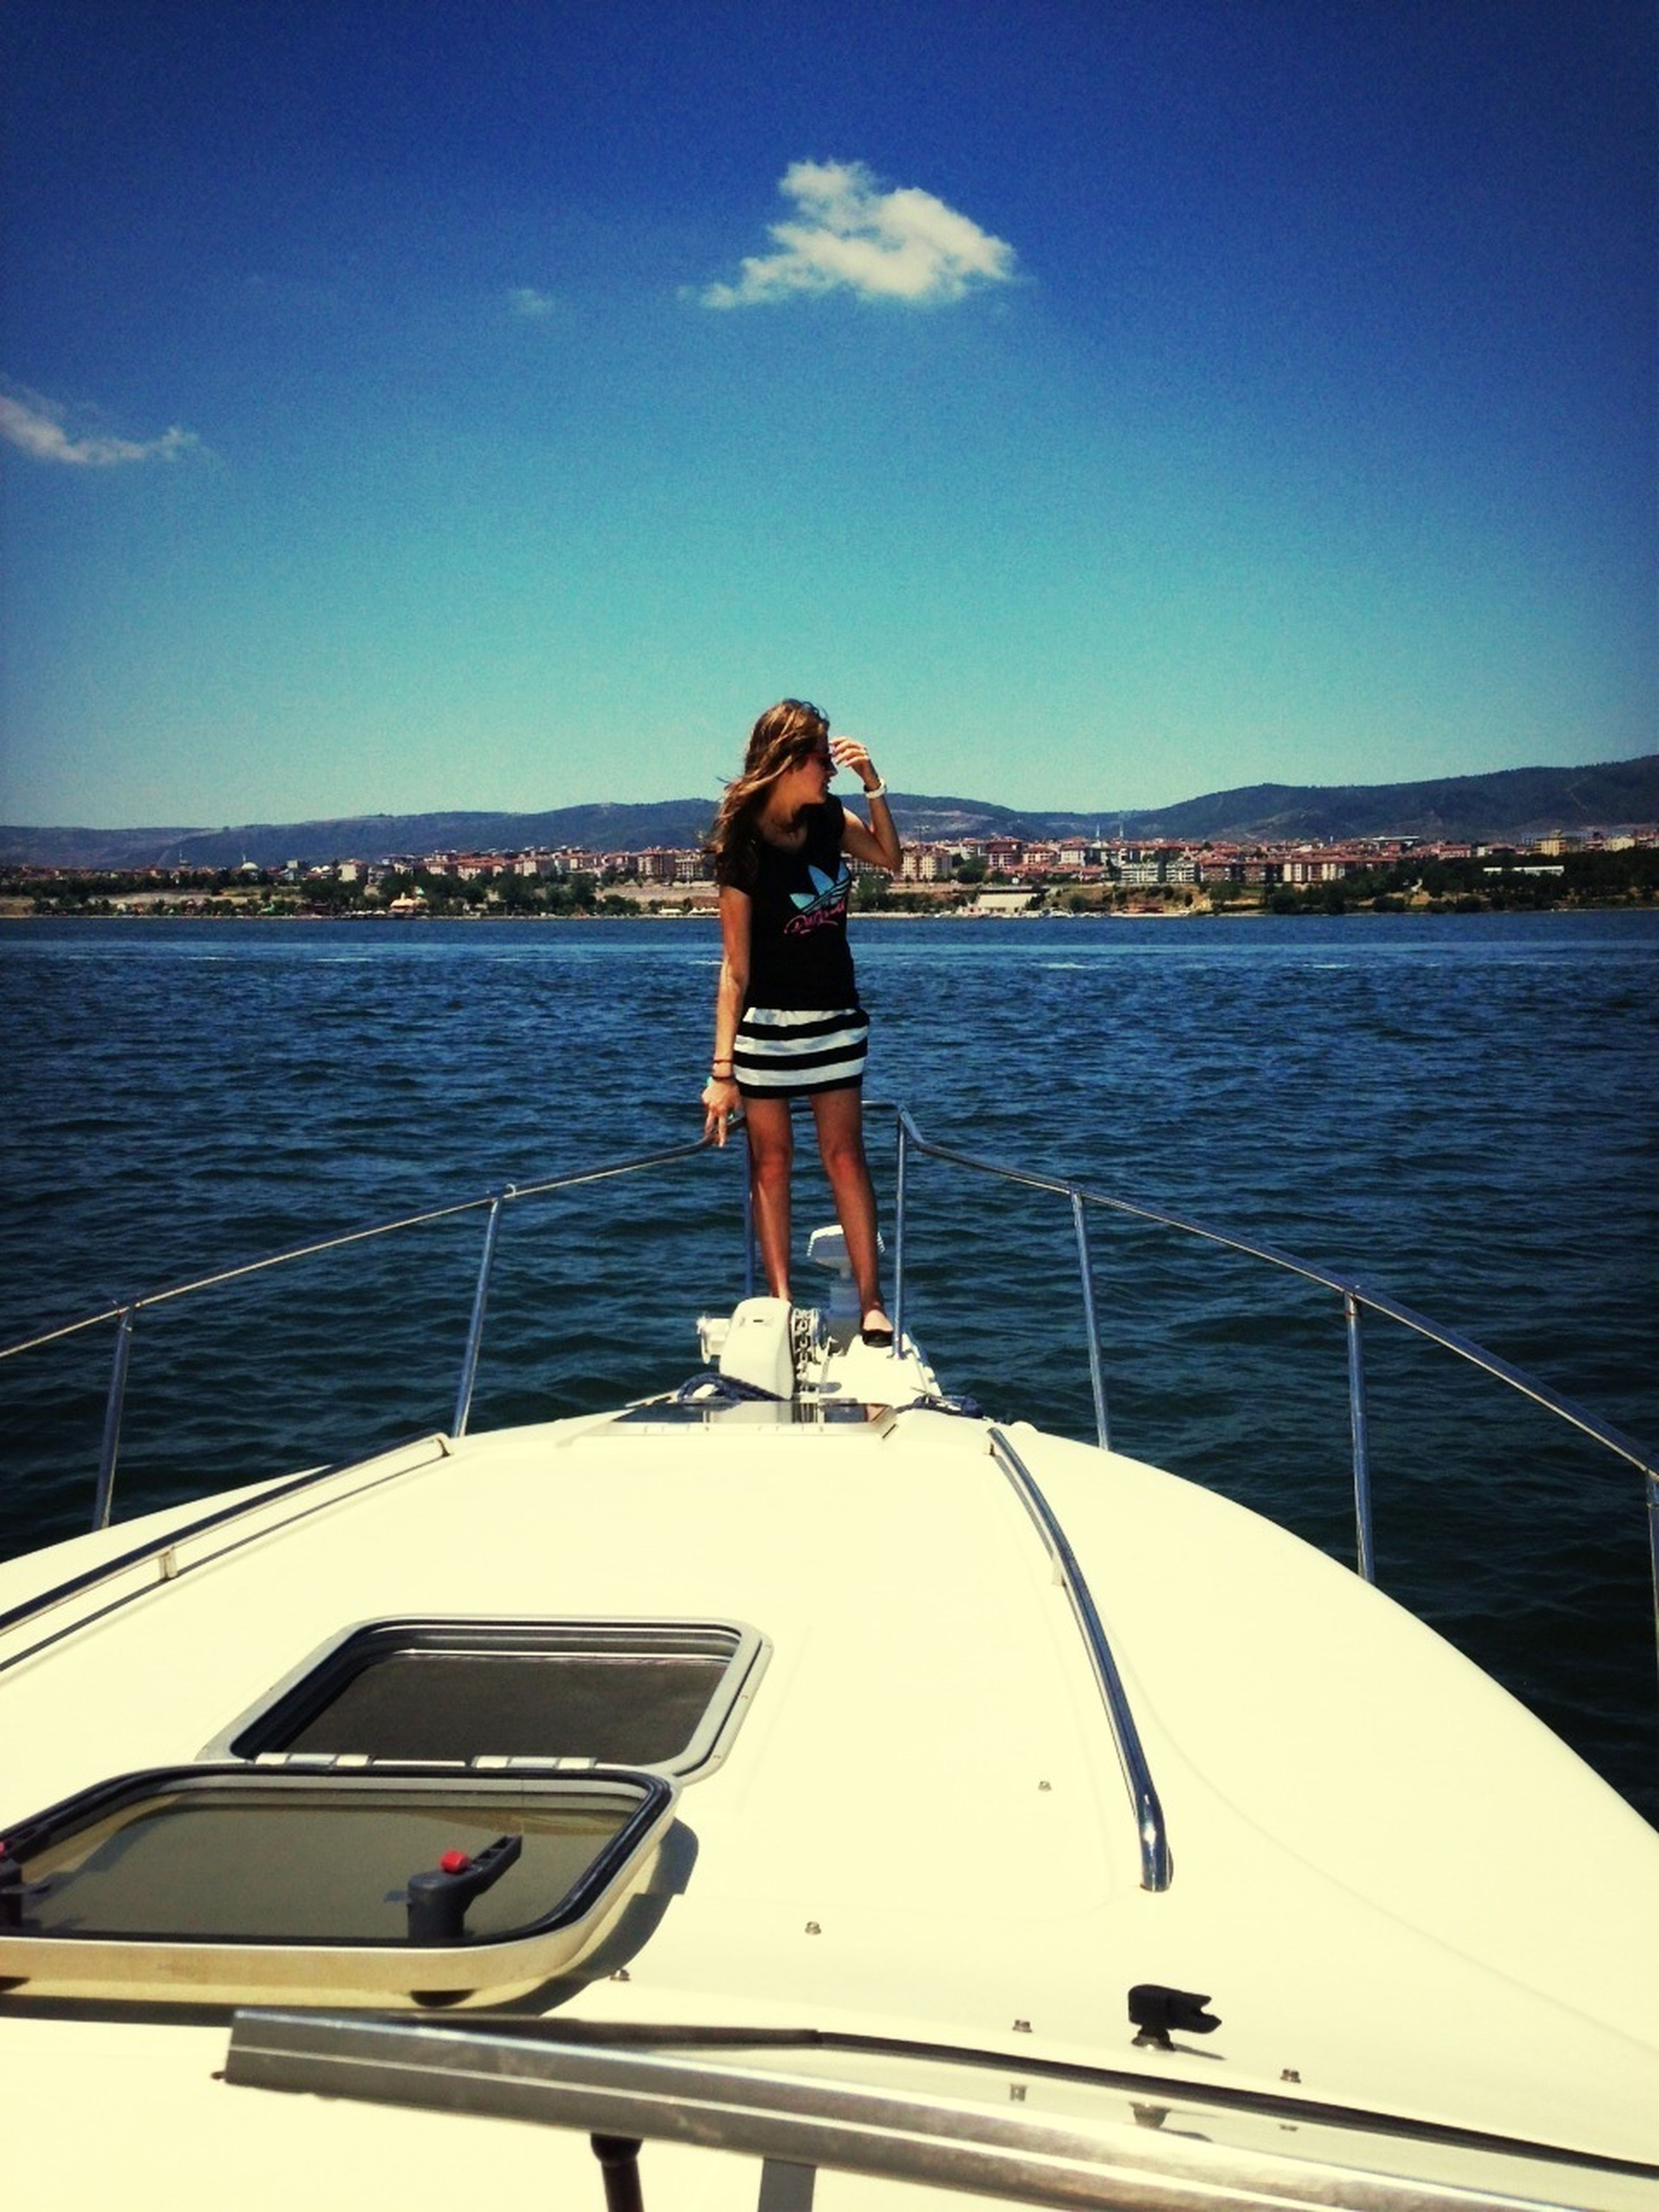 water, blue, lifestyles, sea, full length, transportation, leisure activity, nautical vessel, standing, casual clothing, rear view, sky, railing, young adult, mode of transport, person, day, boat